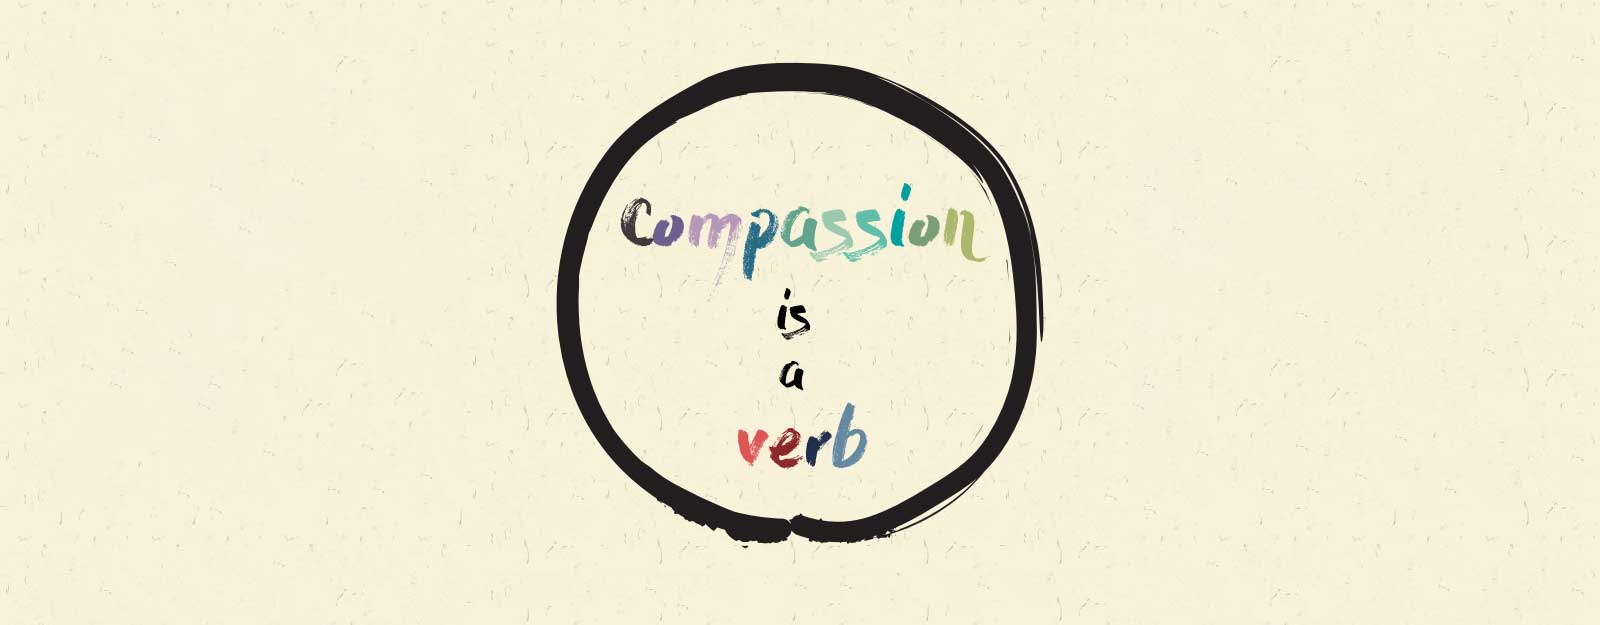 Compassion is a verb